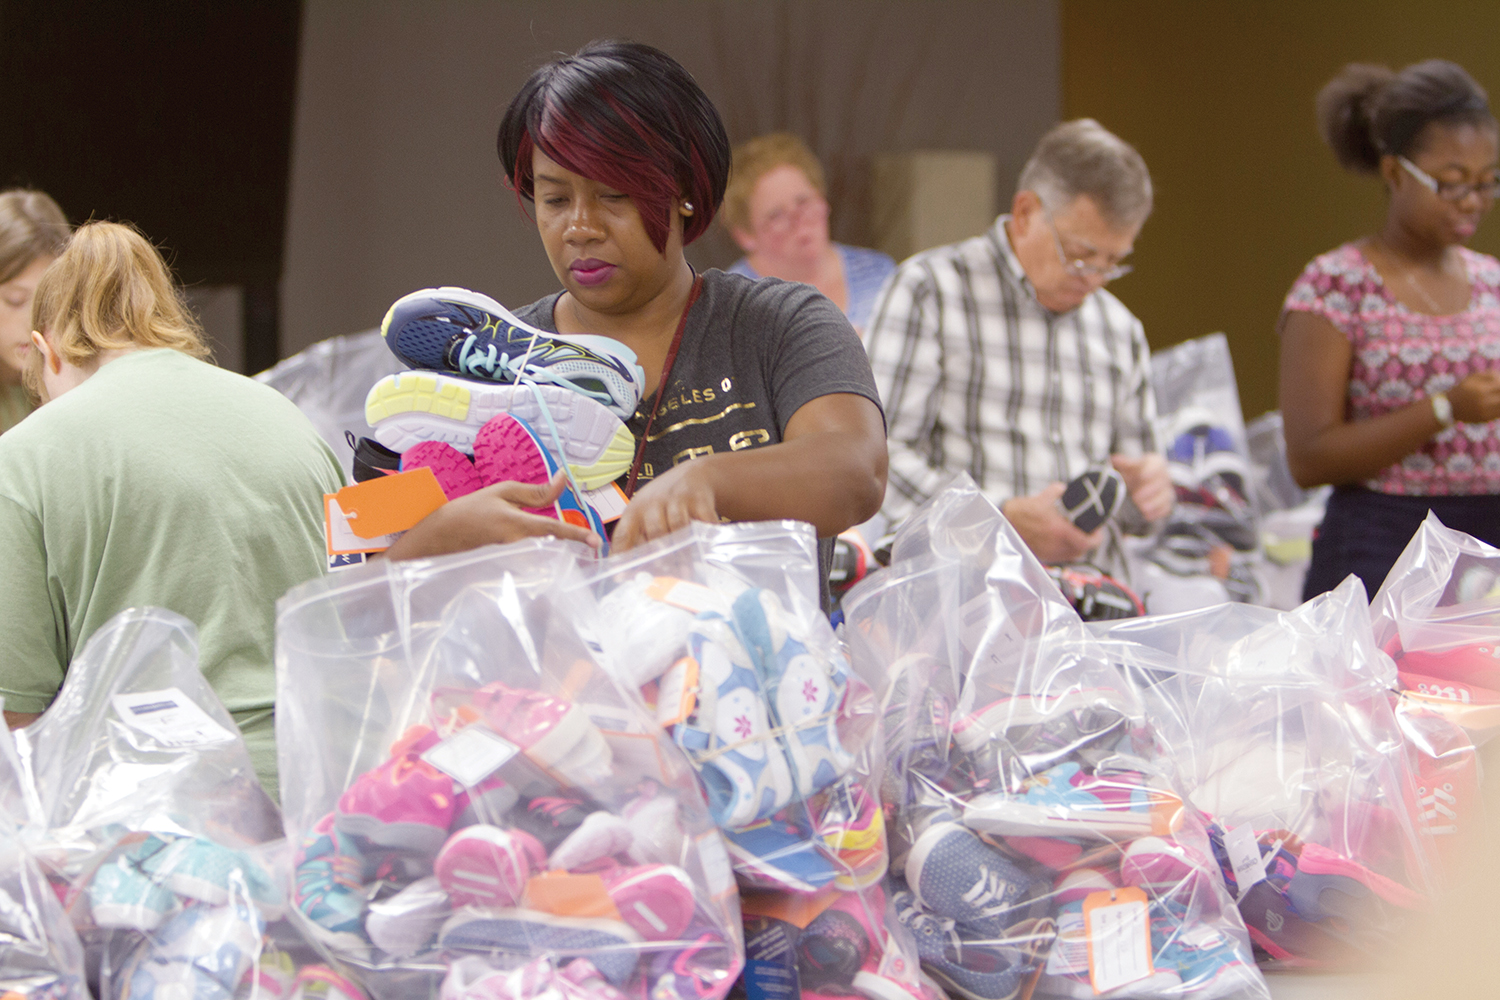 We are thankful for our volunteers who help sort and pack sneakers for Haiti.